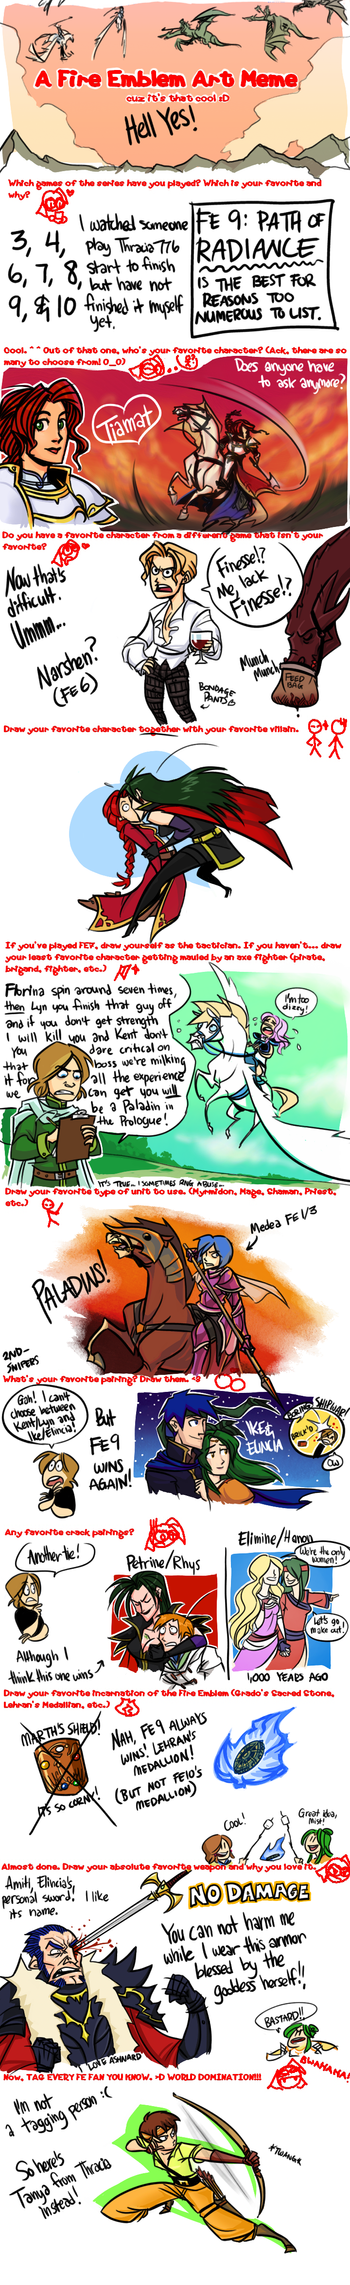 Fire Emblem Meme by omgdragonfly